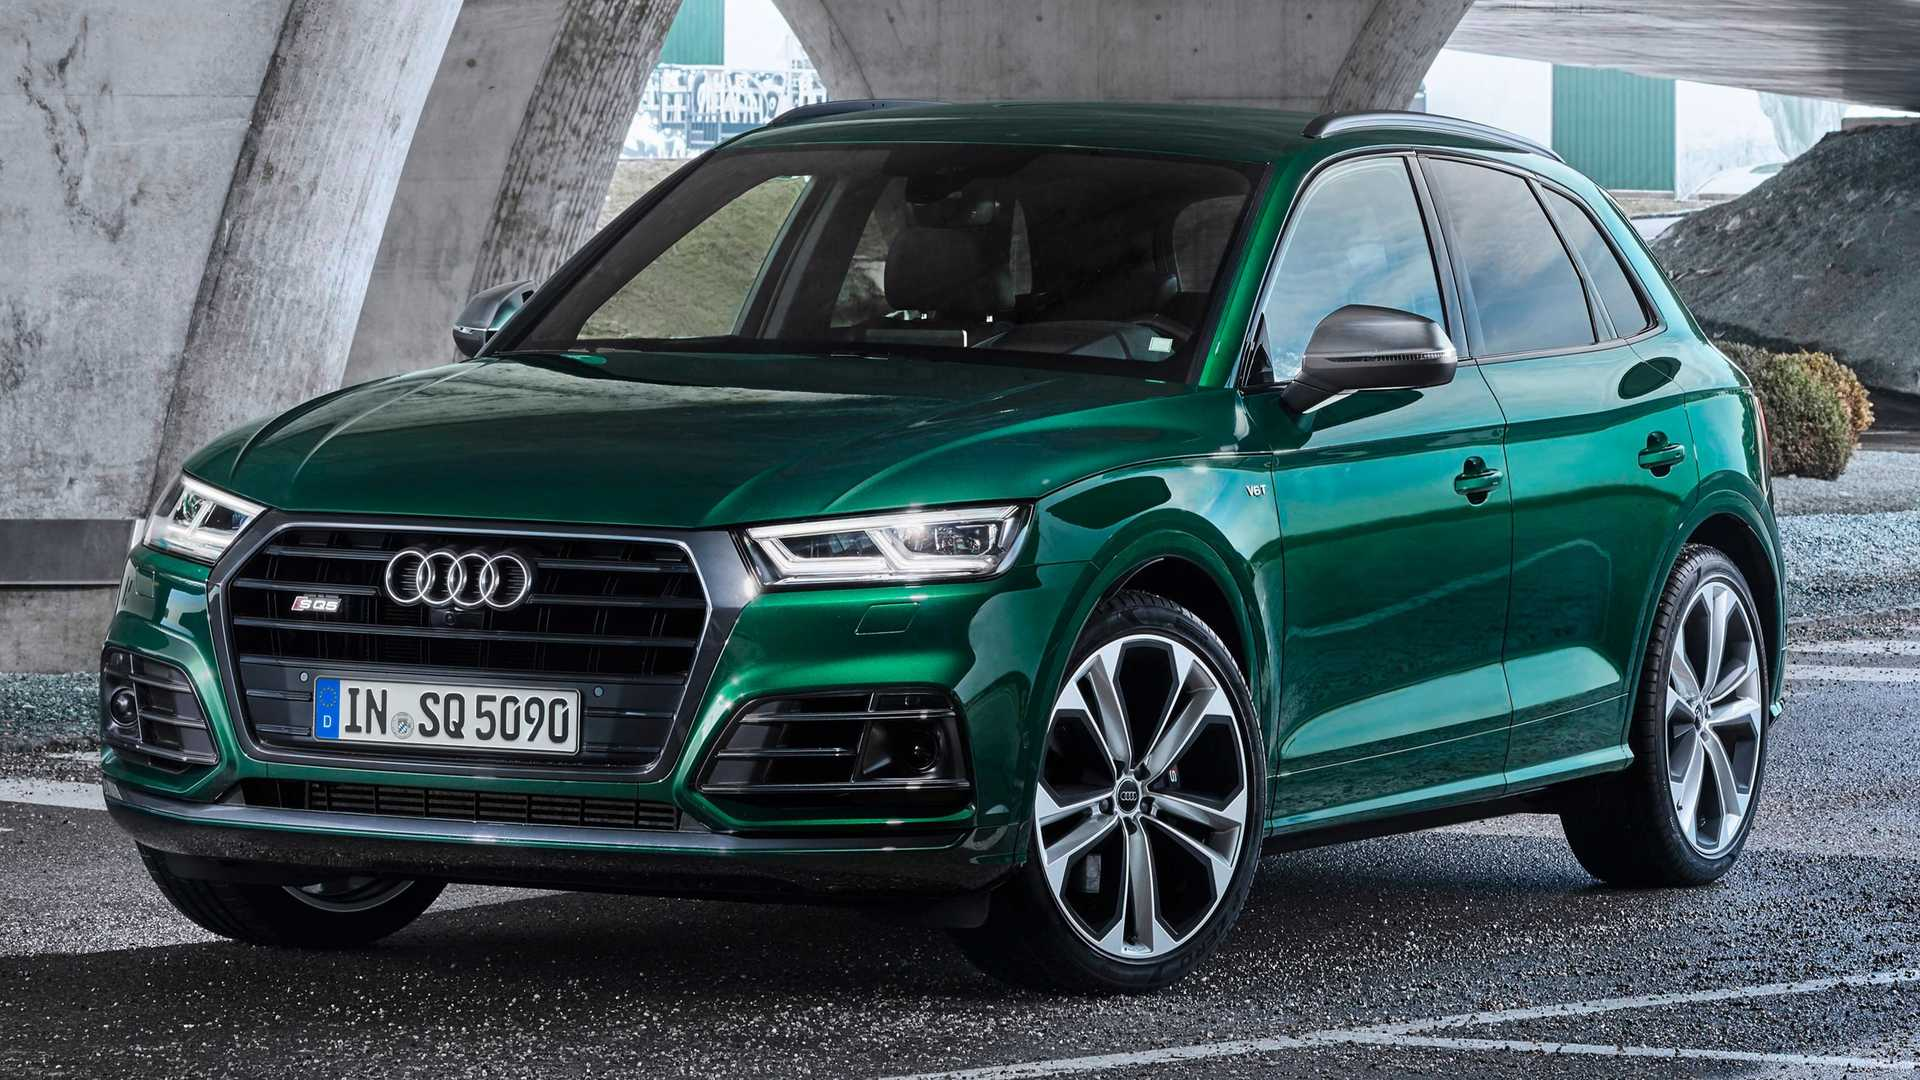 55 All New 2019 Audi Sq5 Specs And Review